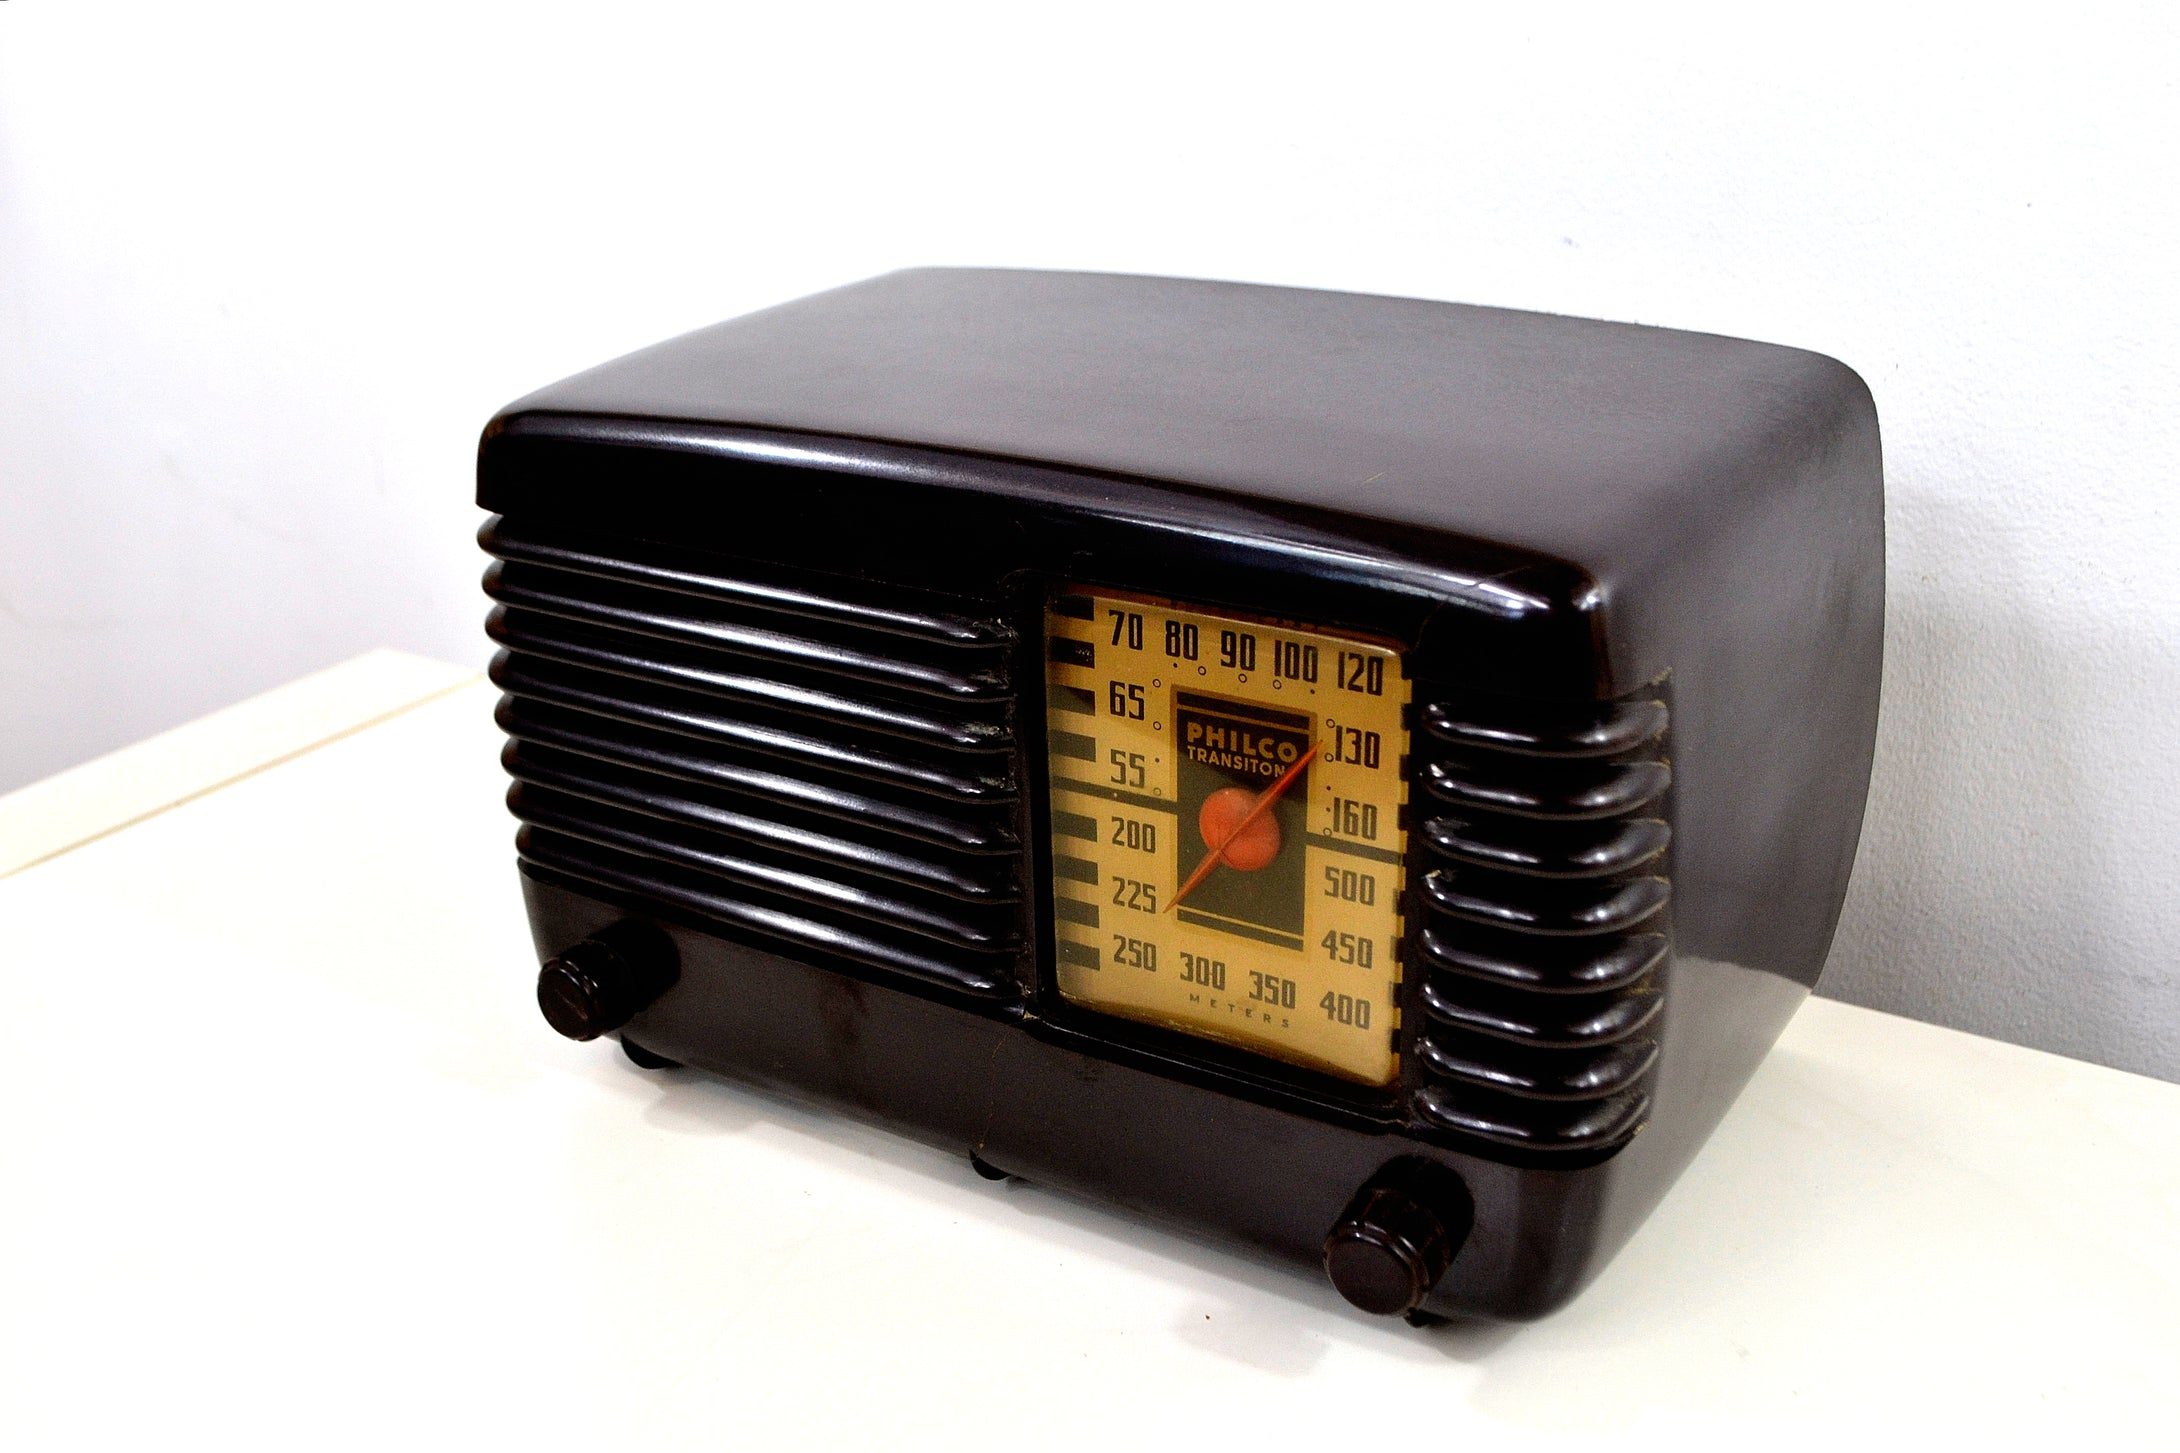 SOLD! - May 27, 2019 - Art Deco Brown Bakelite Vintage 1946 Philco Transitone 46-200 AM Radio Popular Design Back In Its Day! - [product_type} - Philco - Retro Radio Farm